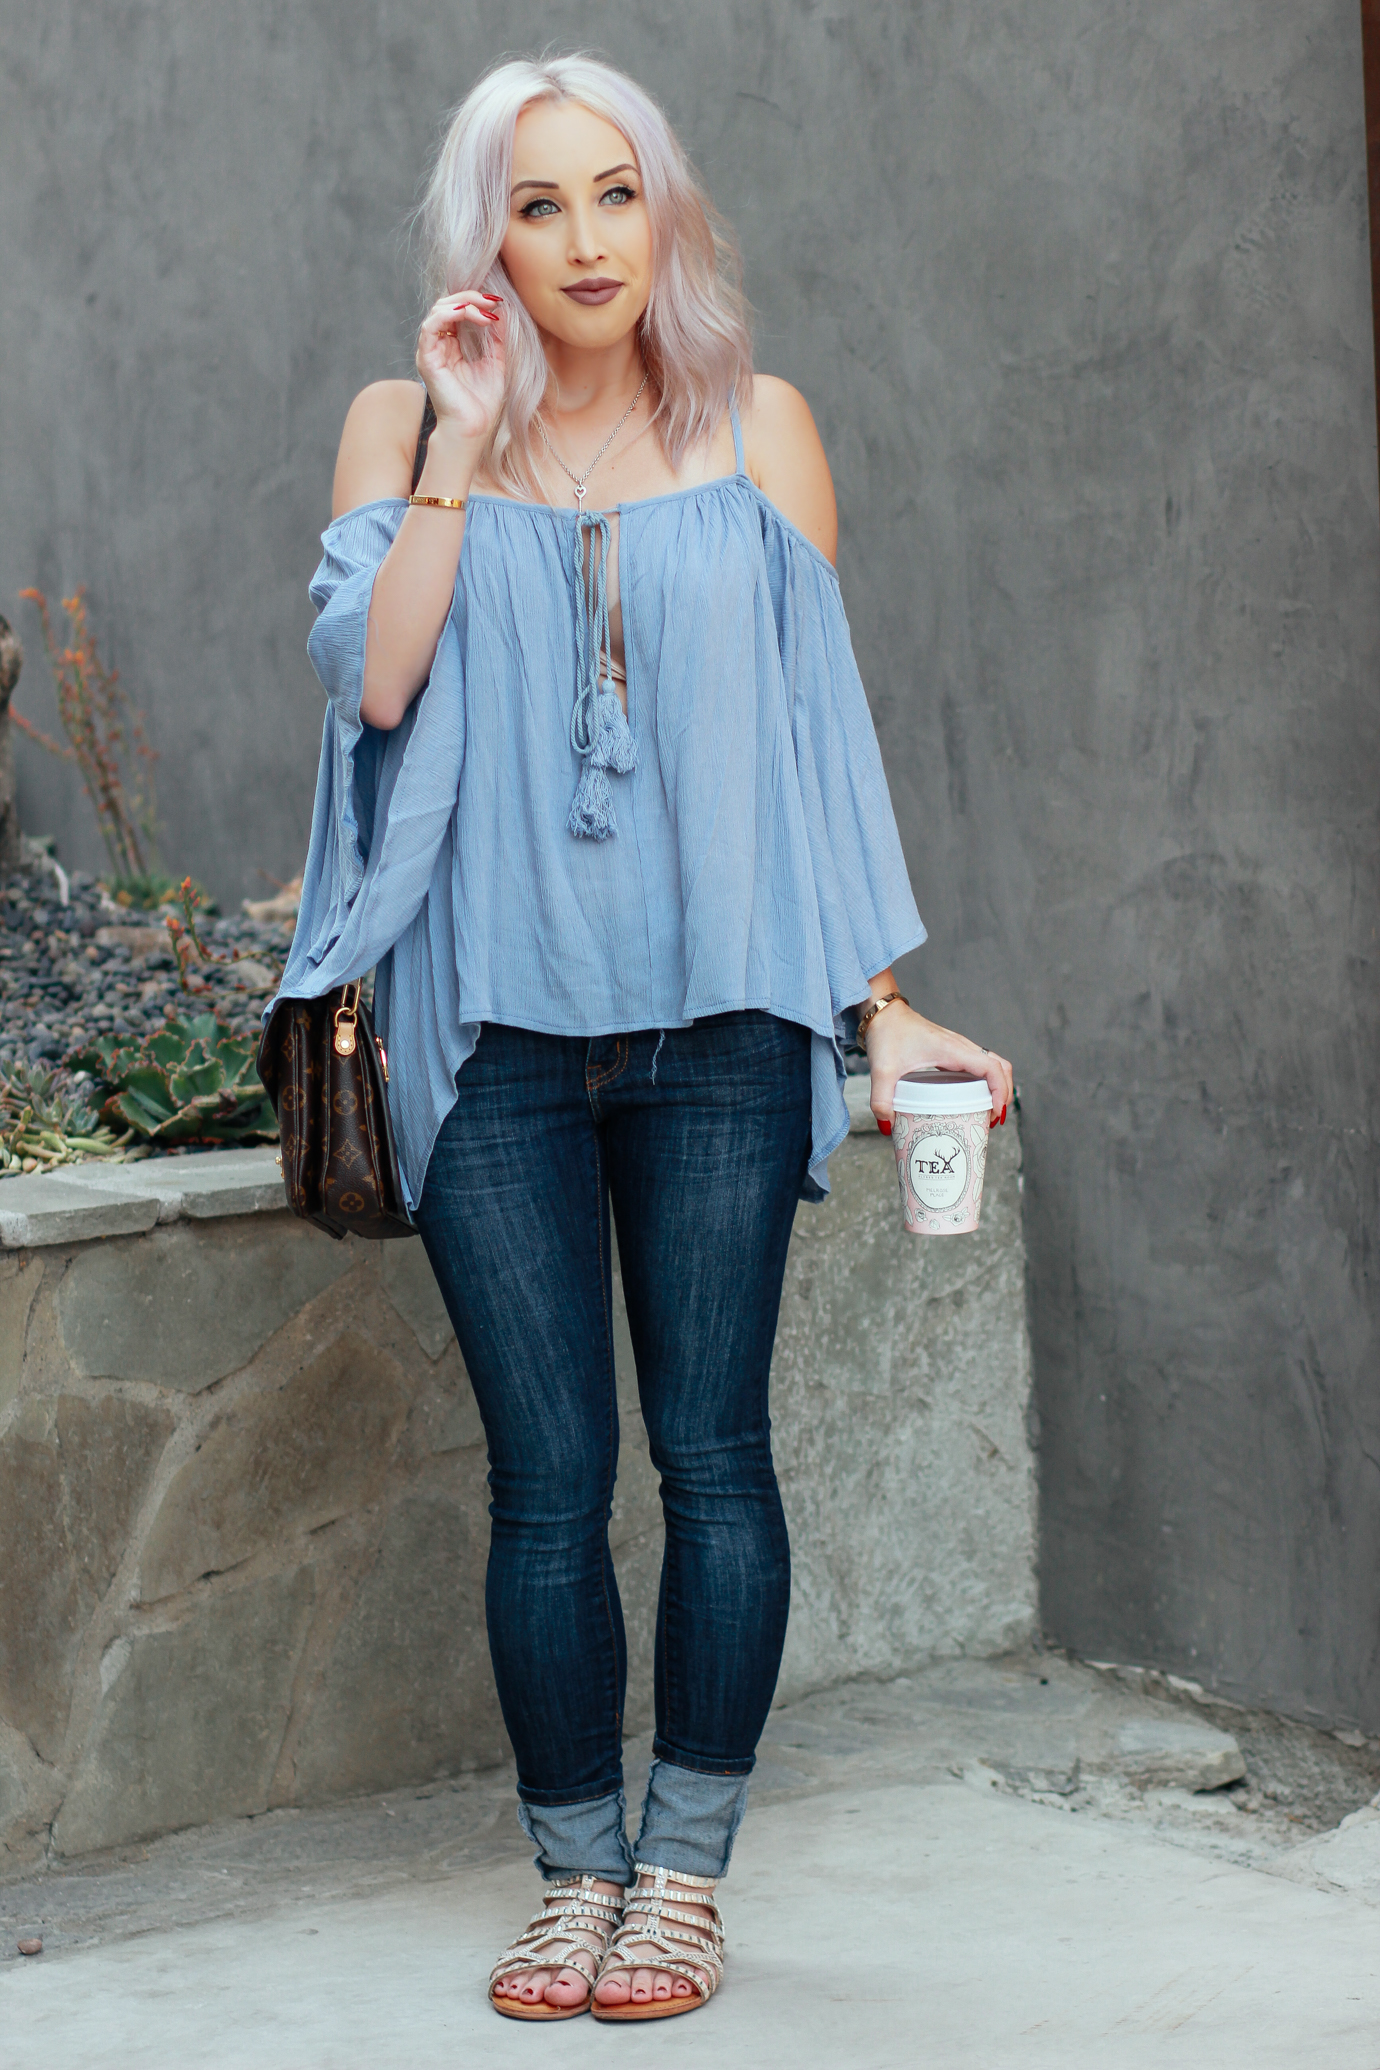 Blondie in the City   Light Blue Tassel Top @windsorstore   Casual Street Style   Alfred Tea Room in West Hollywood   Lip Color: Trap by @ColourPopCo